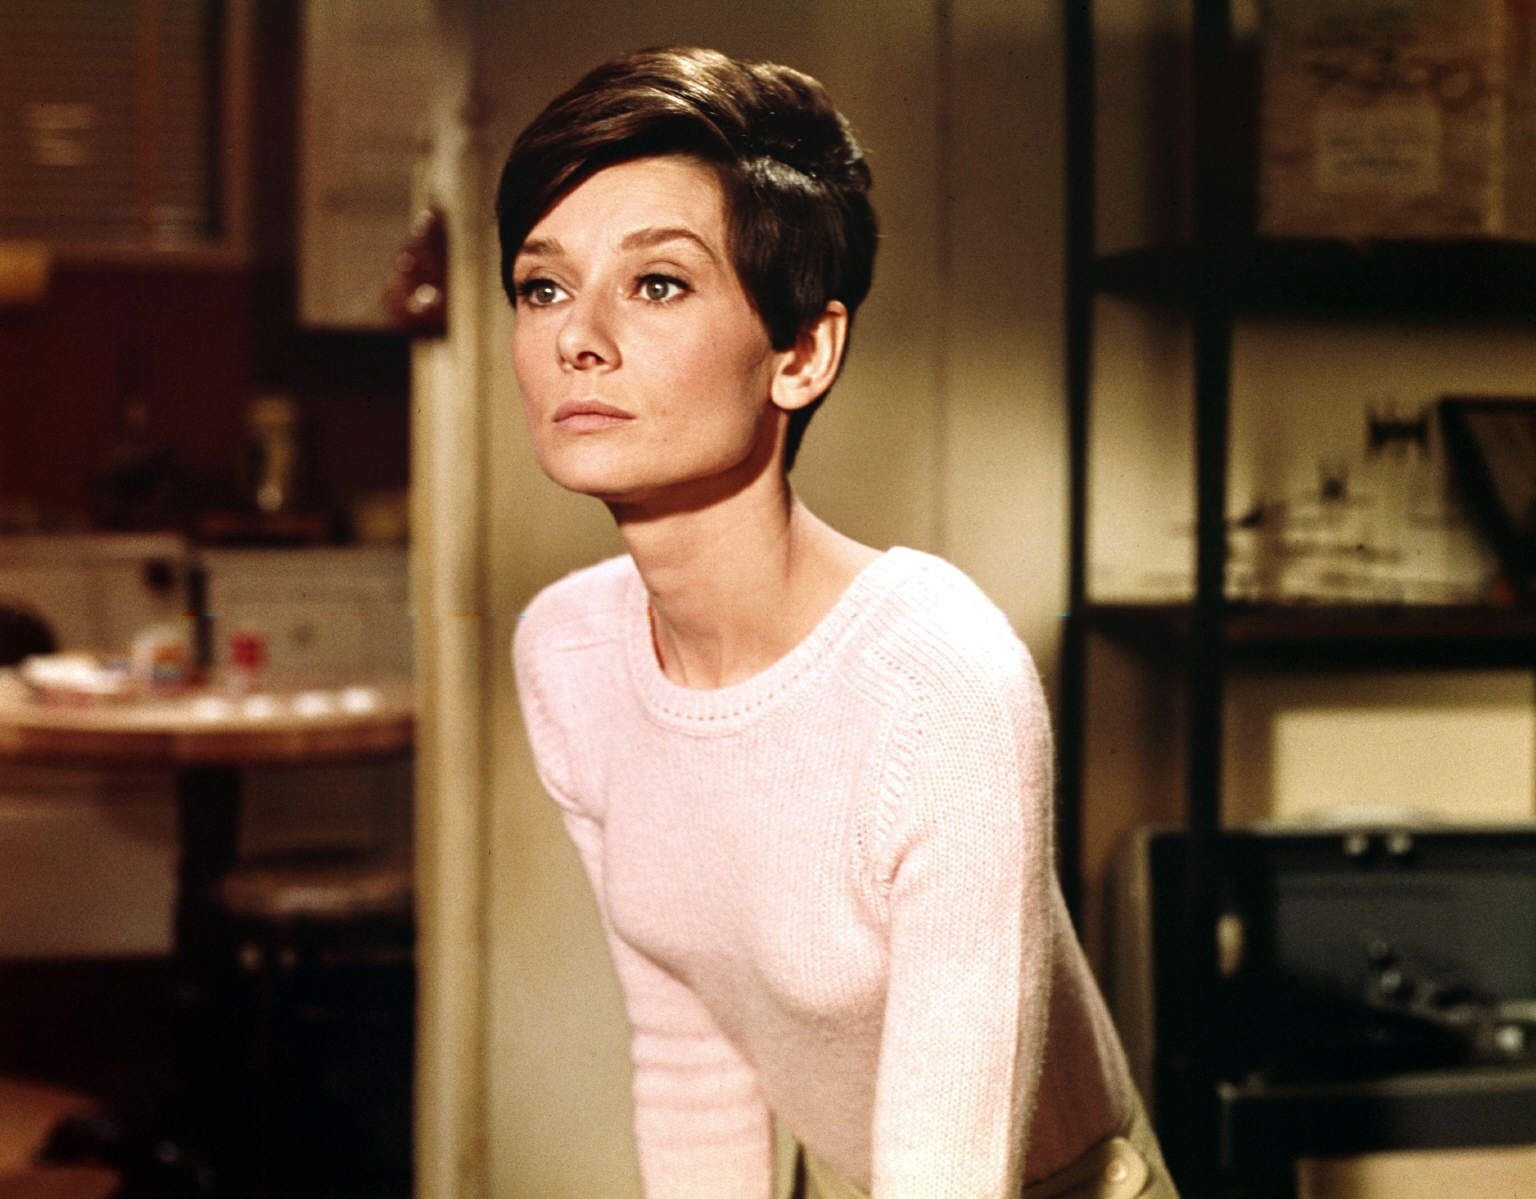 Wait Until Dark Wait Until Dark Film Review Slant Magazine 602x330 Movie-index.com